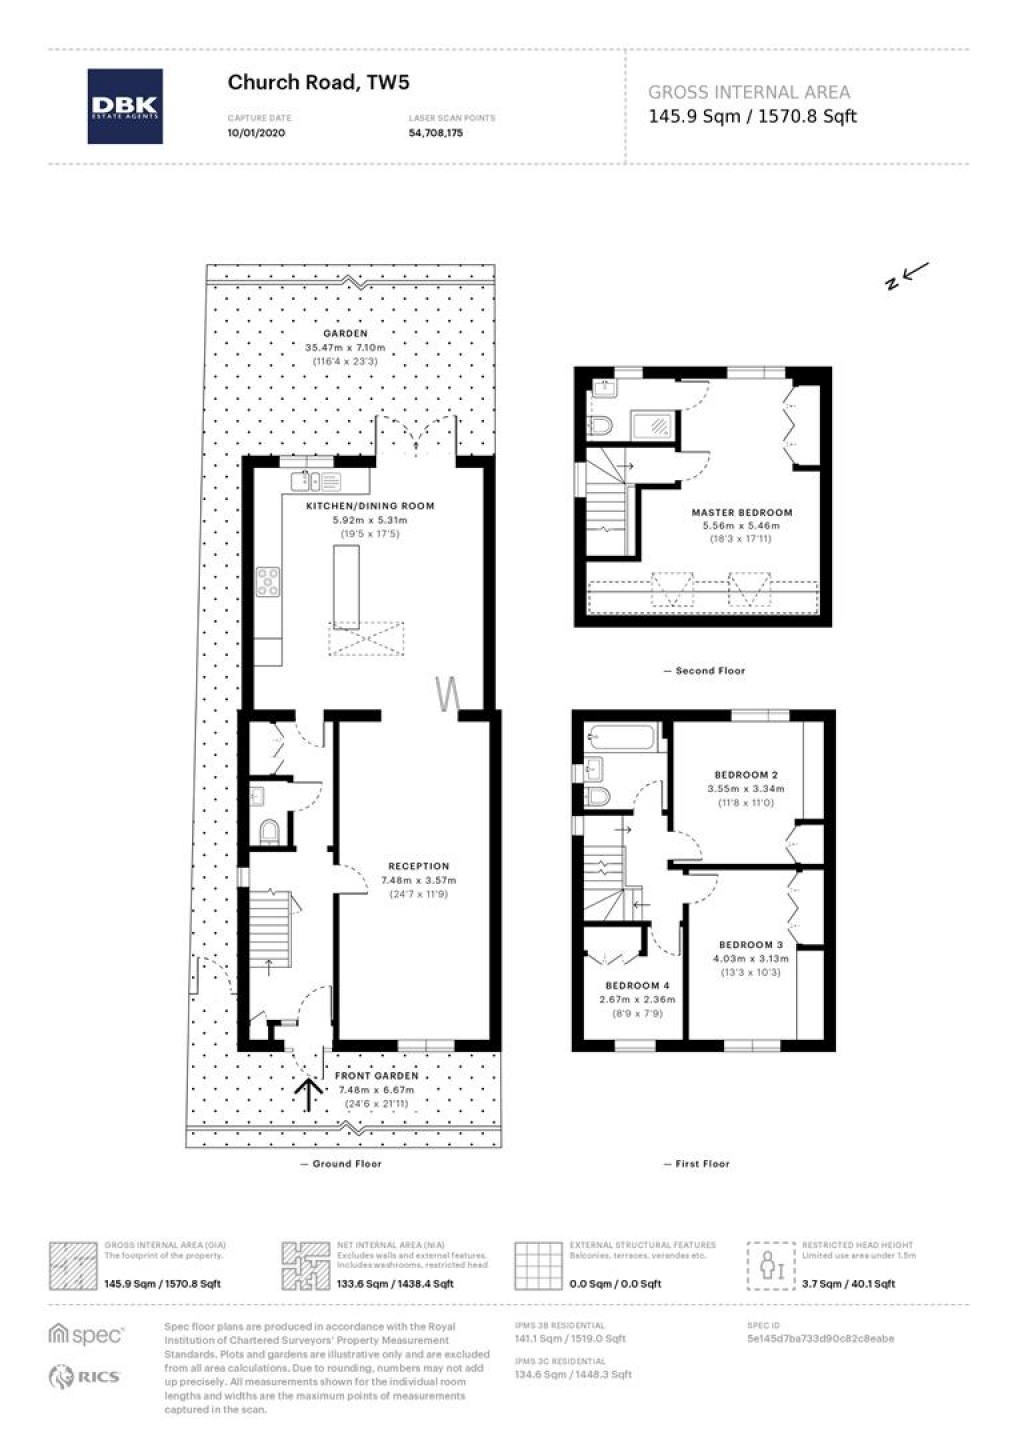 Floorplans For Church Road, Heston, TW5